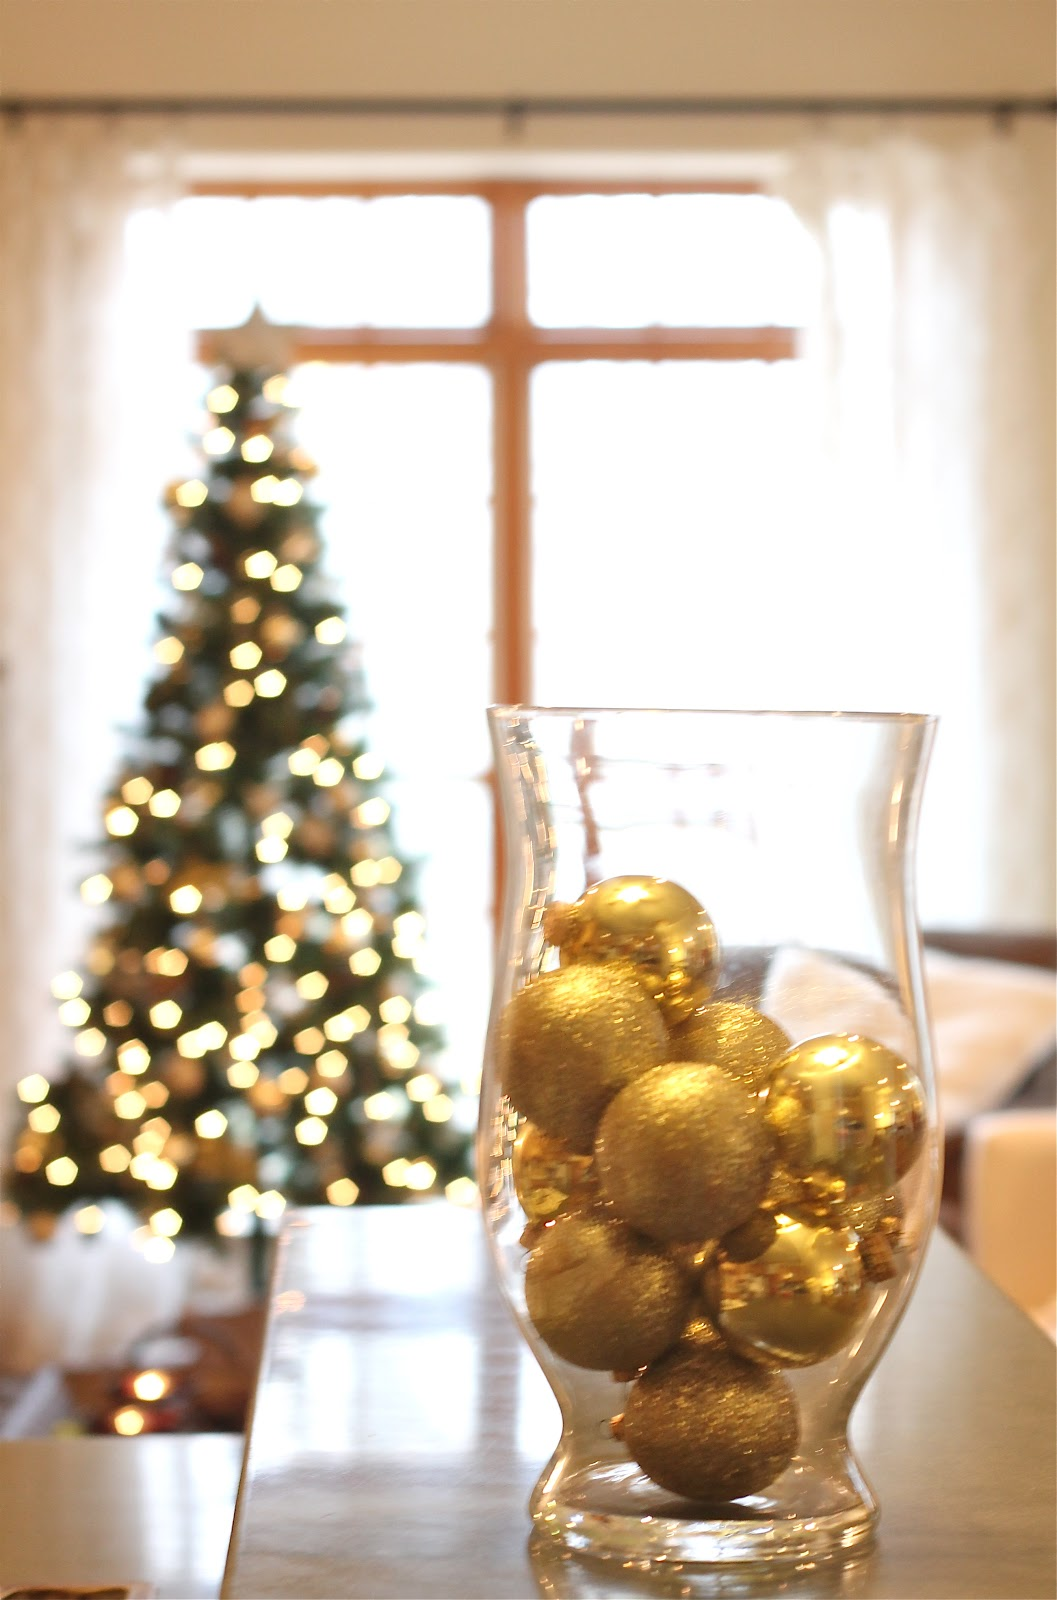 Holiday Decor - easy and inexpensive ways to decorate for the holidays